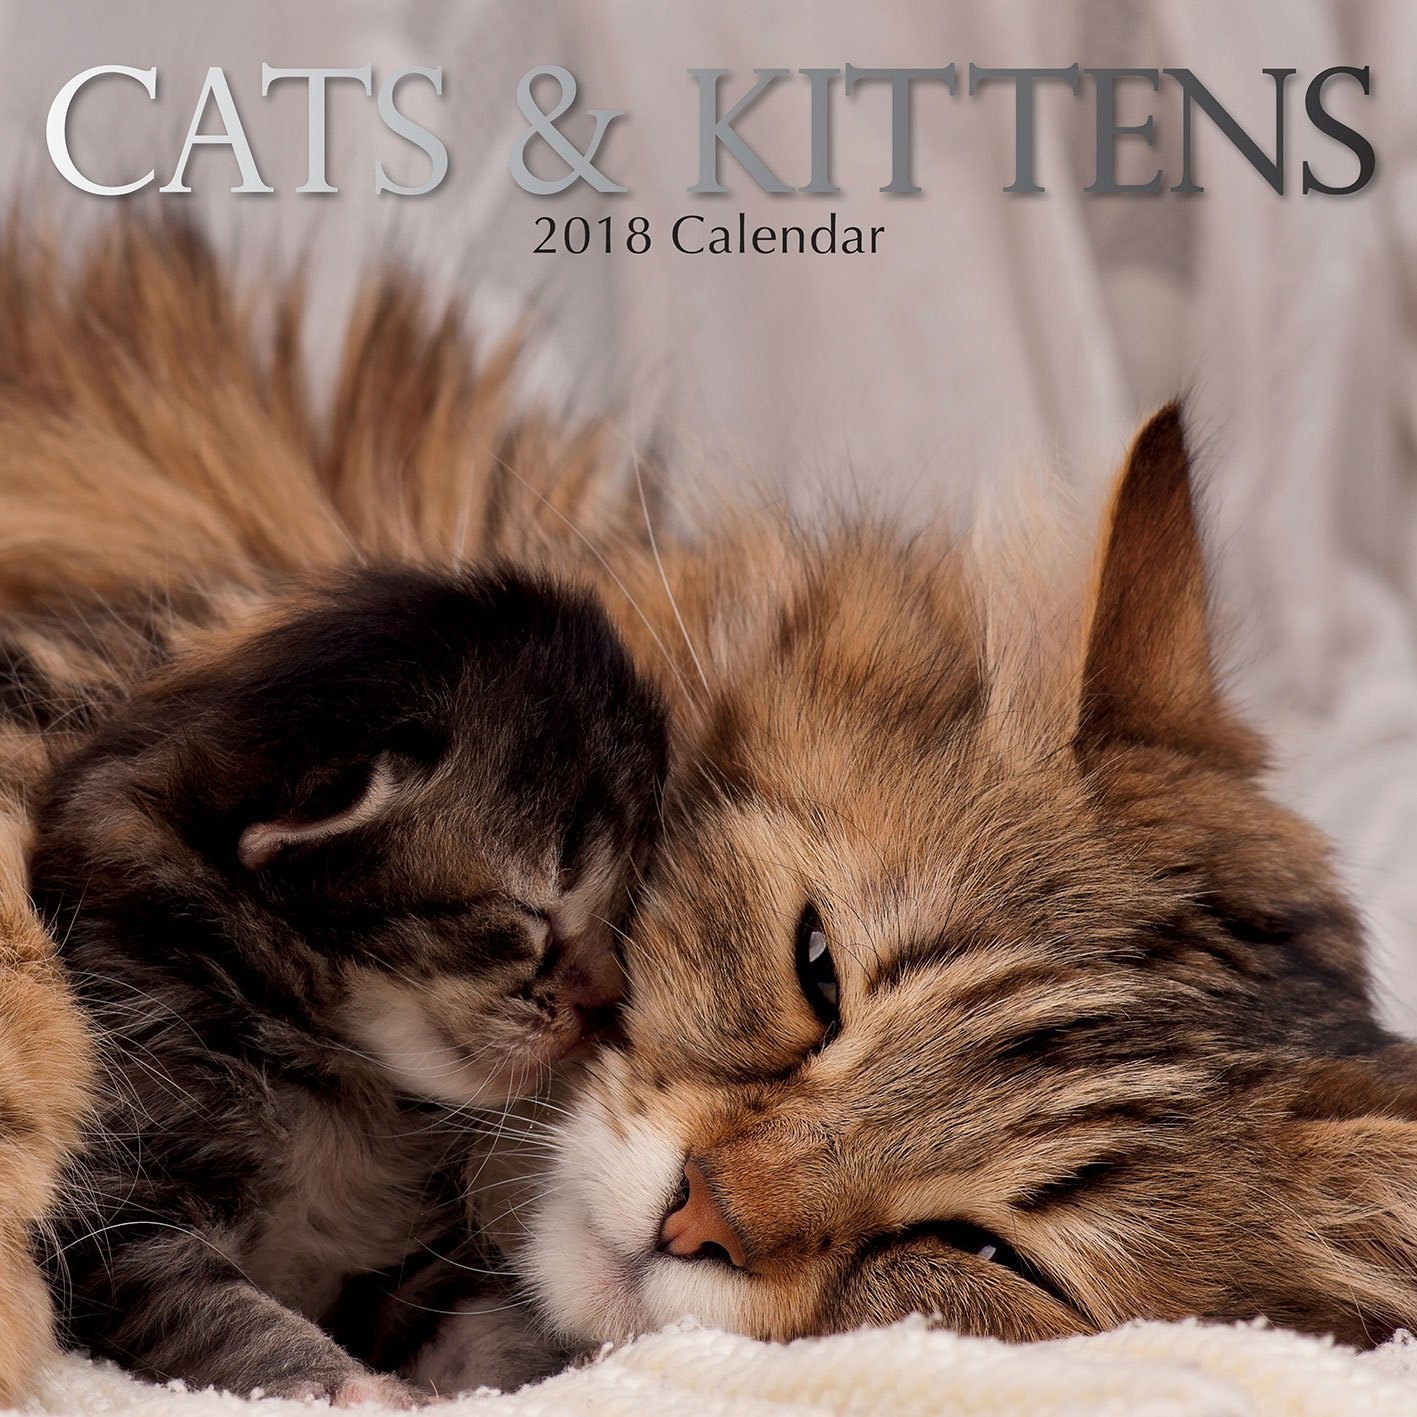 Cats & Kittens 16 Month 2018 Square Wall Calendar Amazon